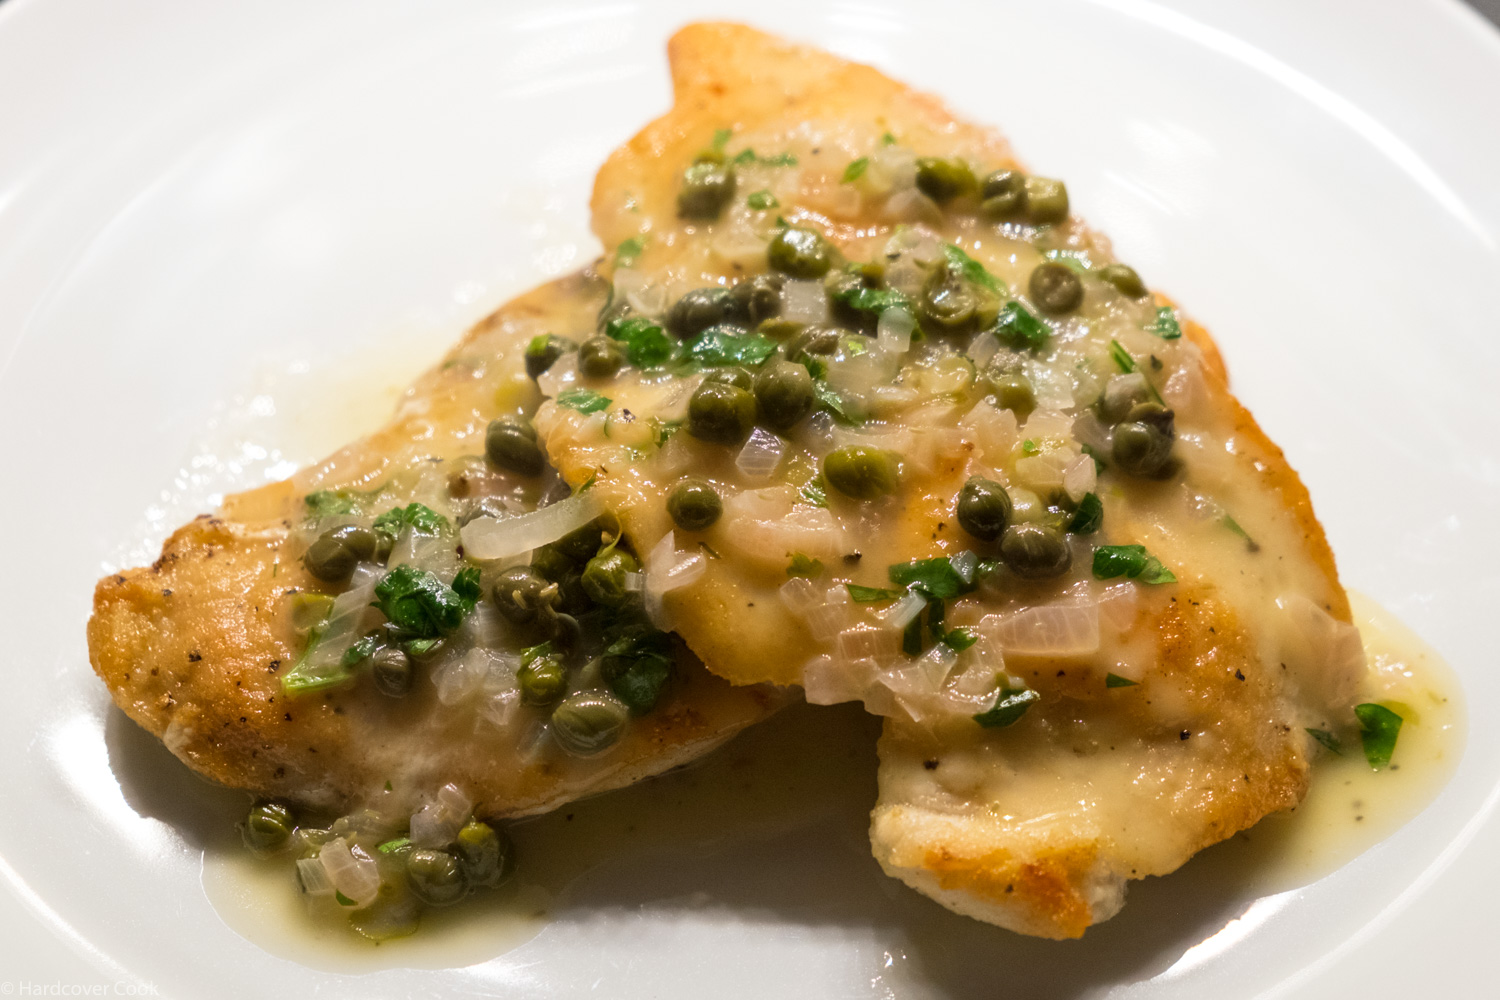 3-minute chicken cutlets & Lemon Caper Pan Sauce from The Food Lab